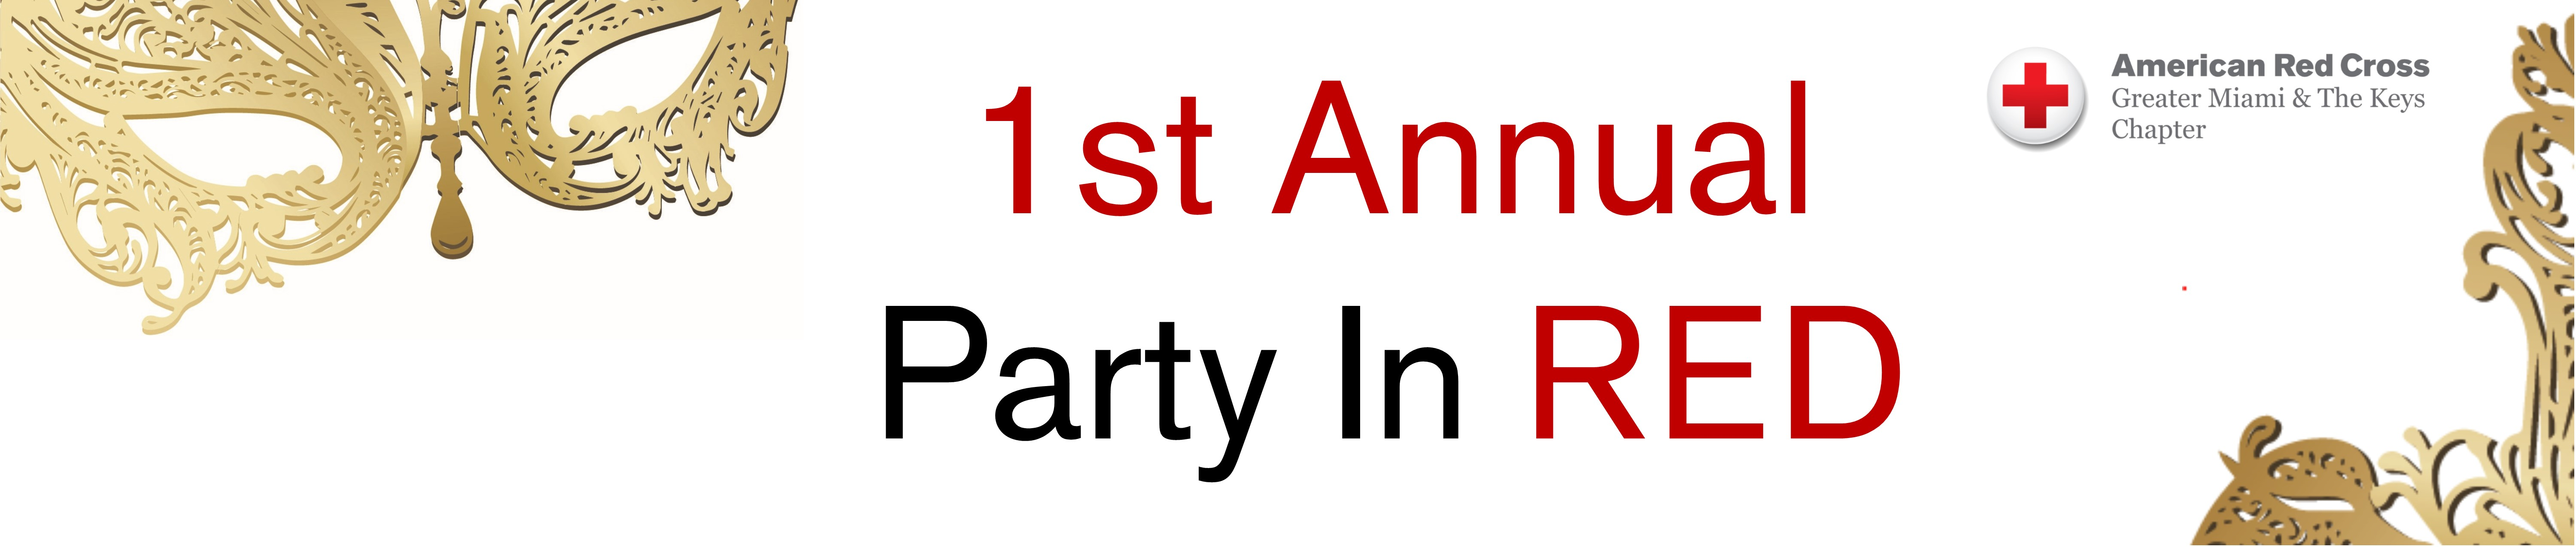 1st Annual Party In RED